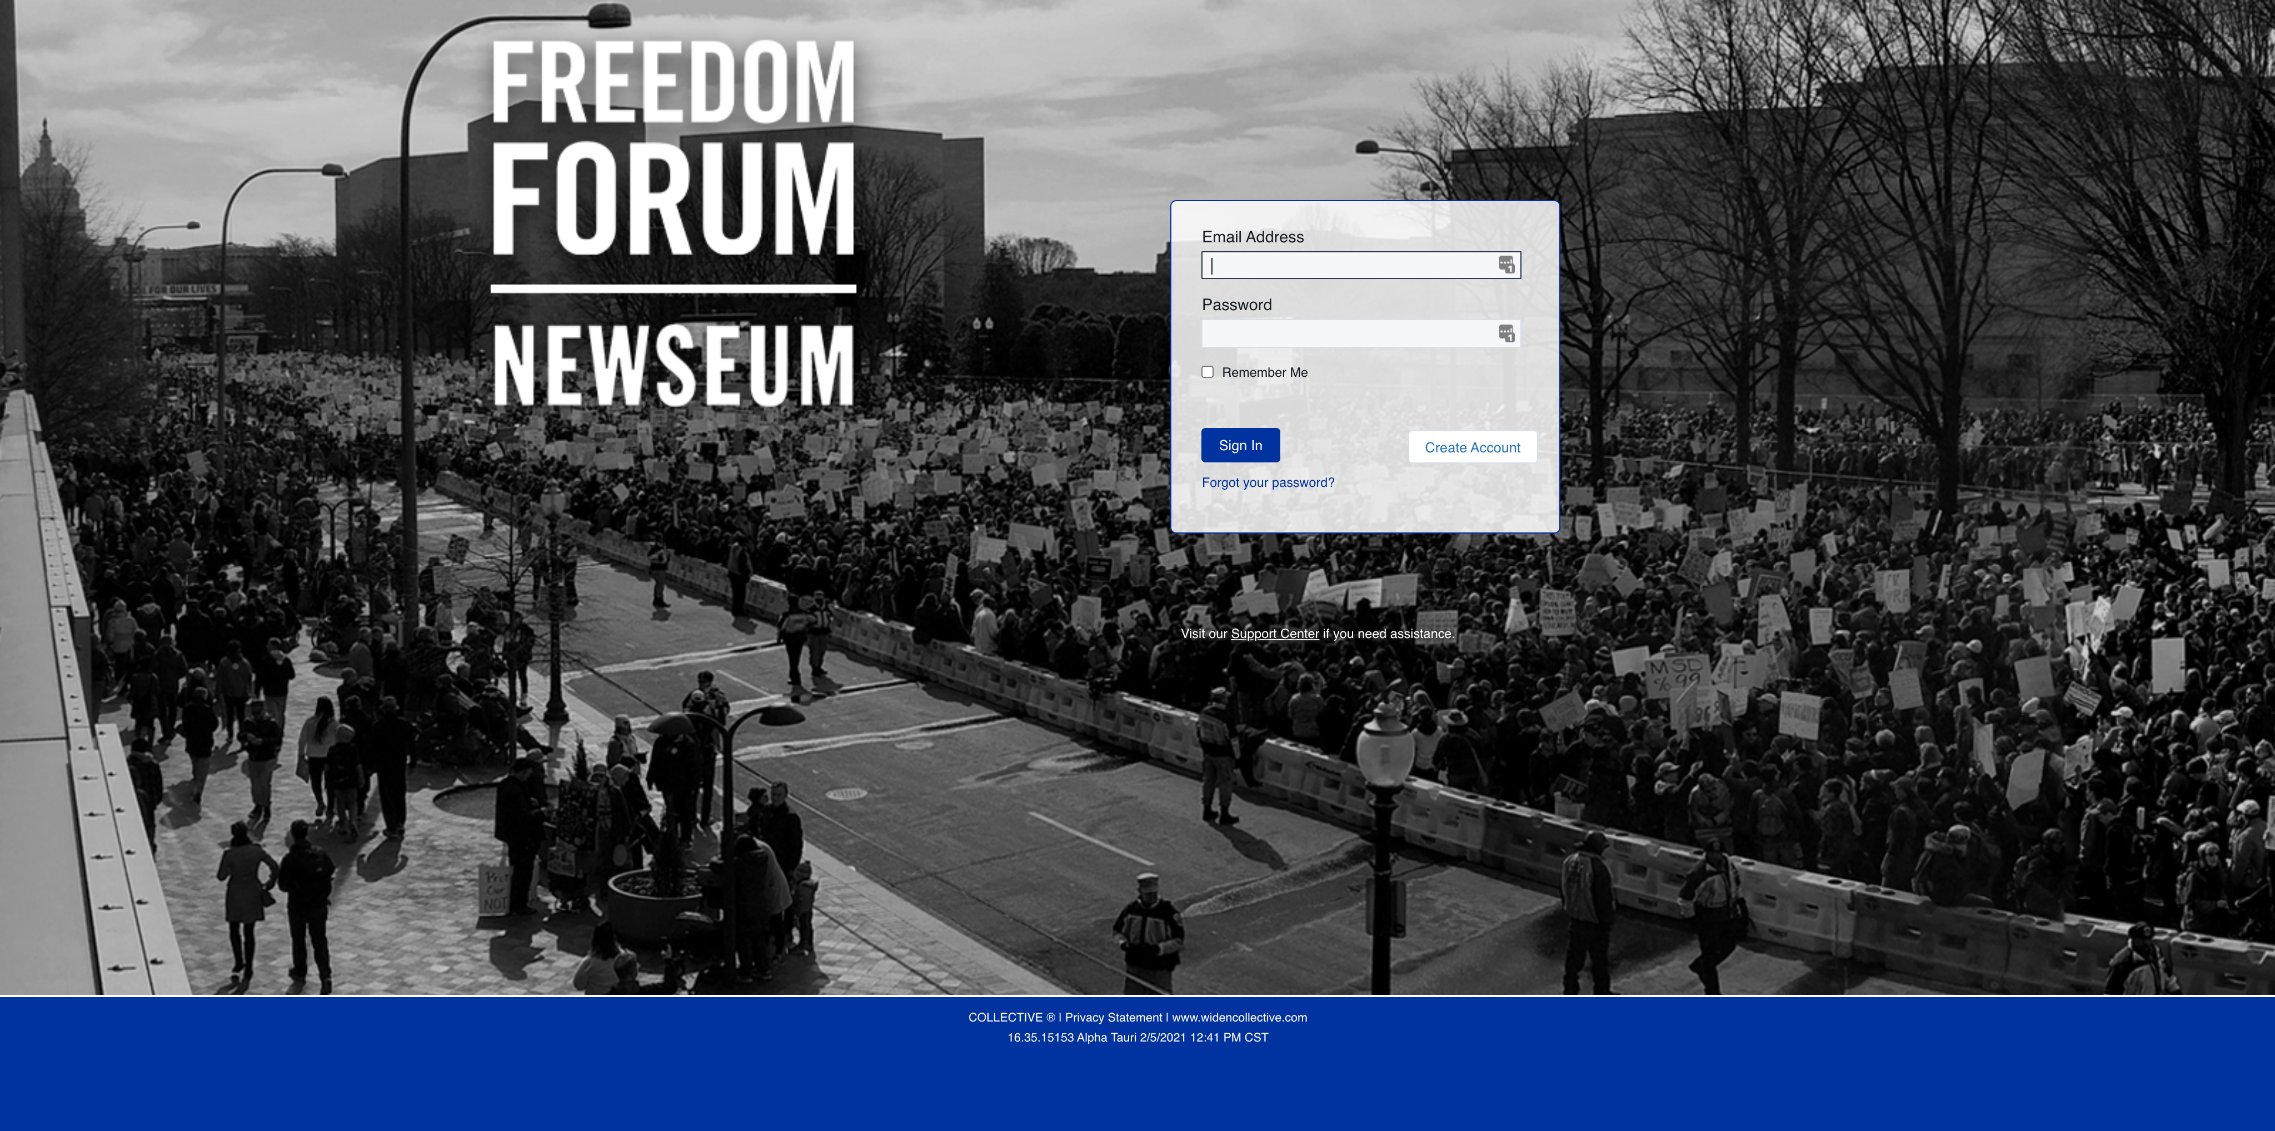 Screenshot of the Freedom Forum/Newseum's Widen Collective login screen. It has a black and white picture of an activist march as the background and a login box with a place for your email address and password.